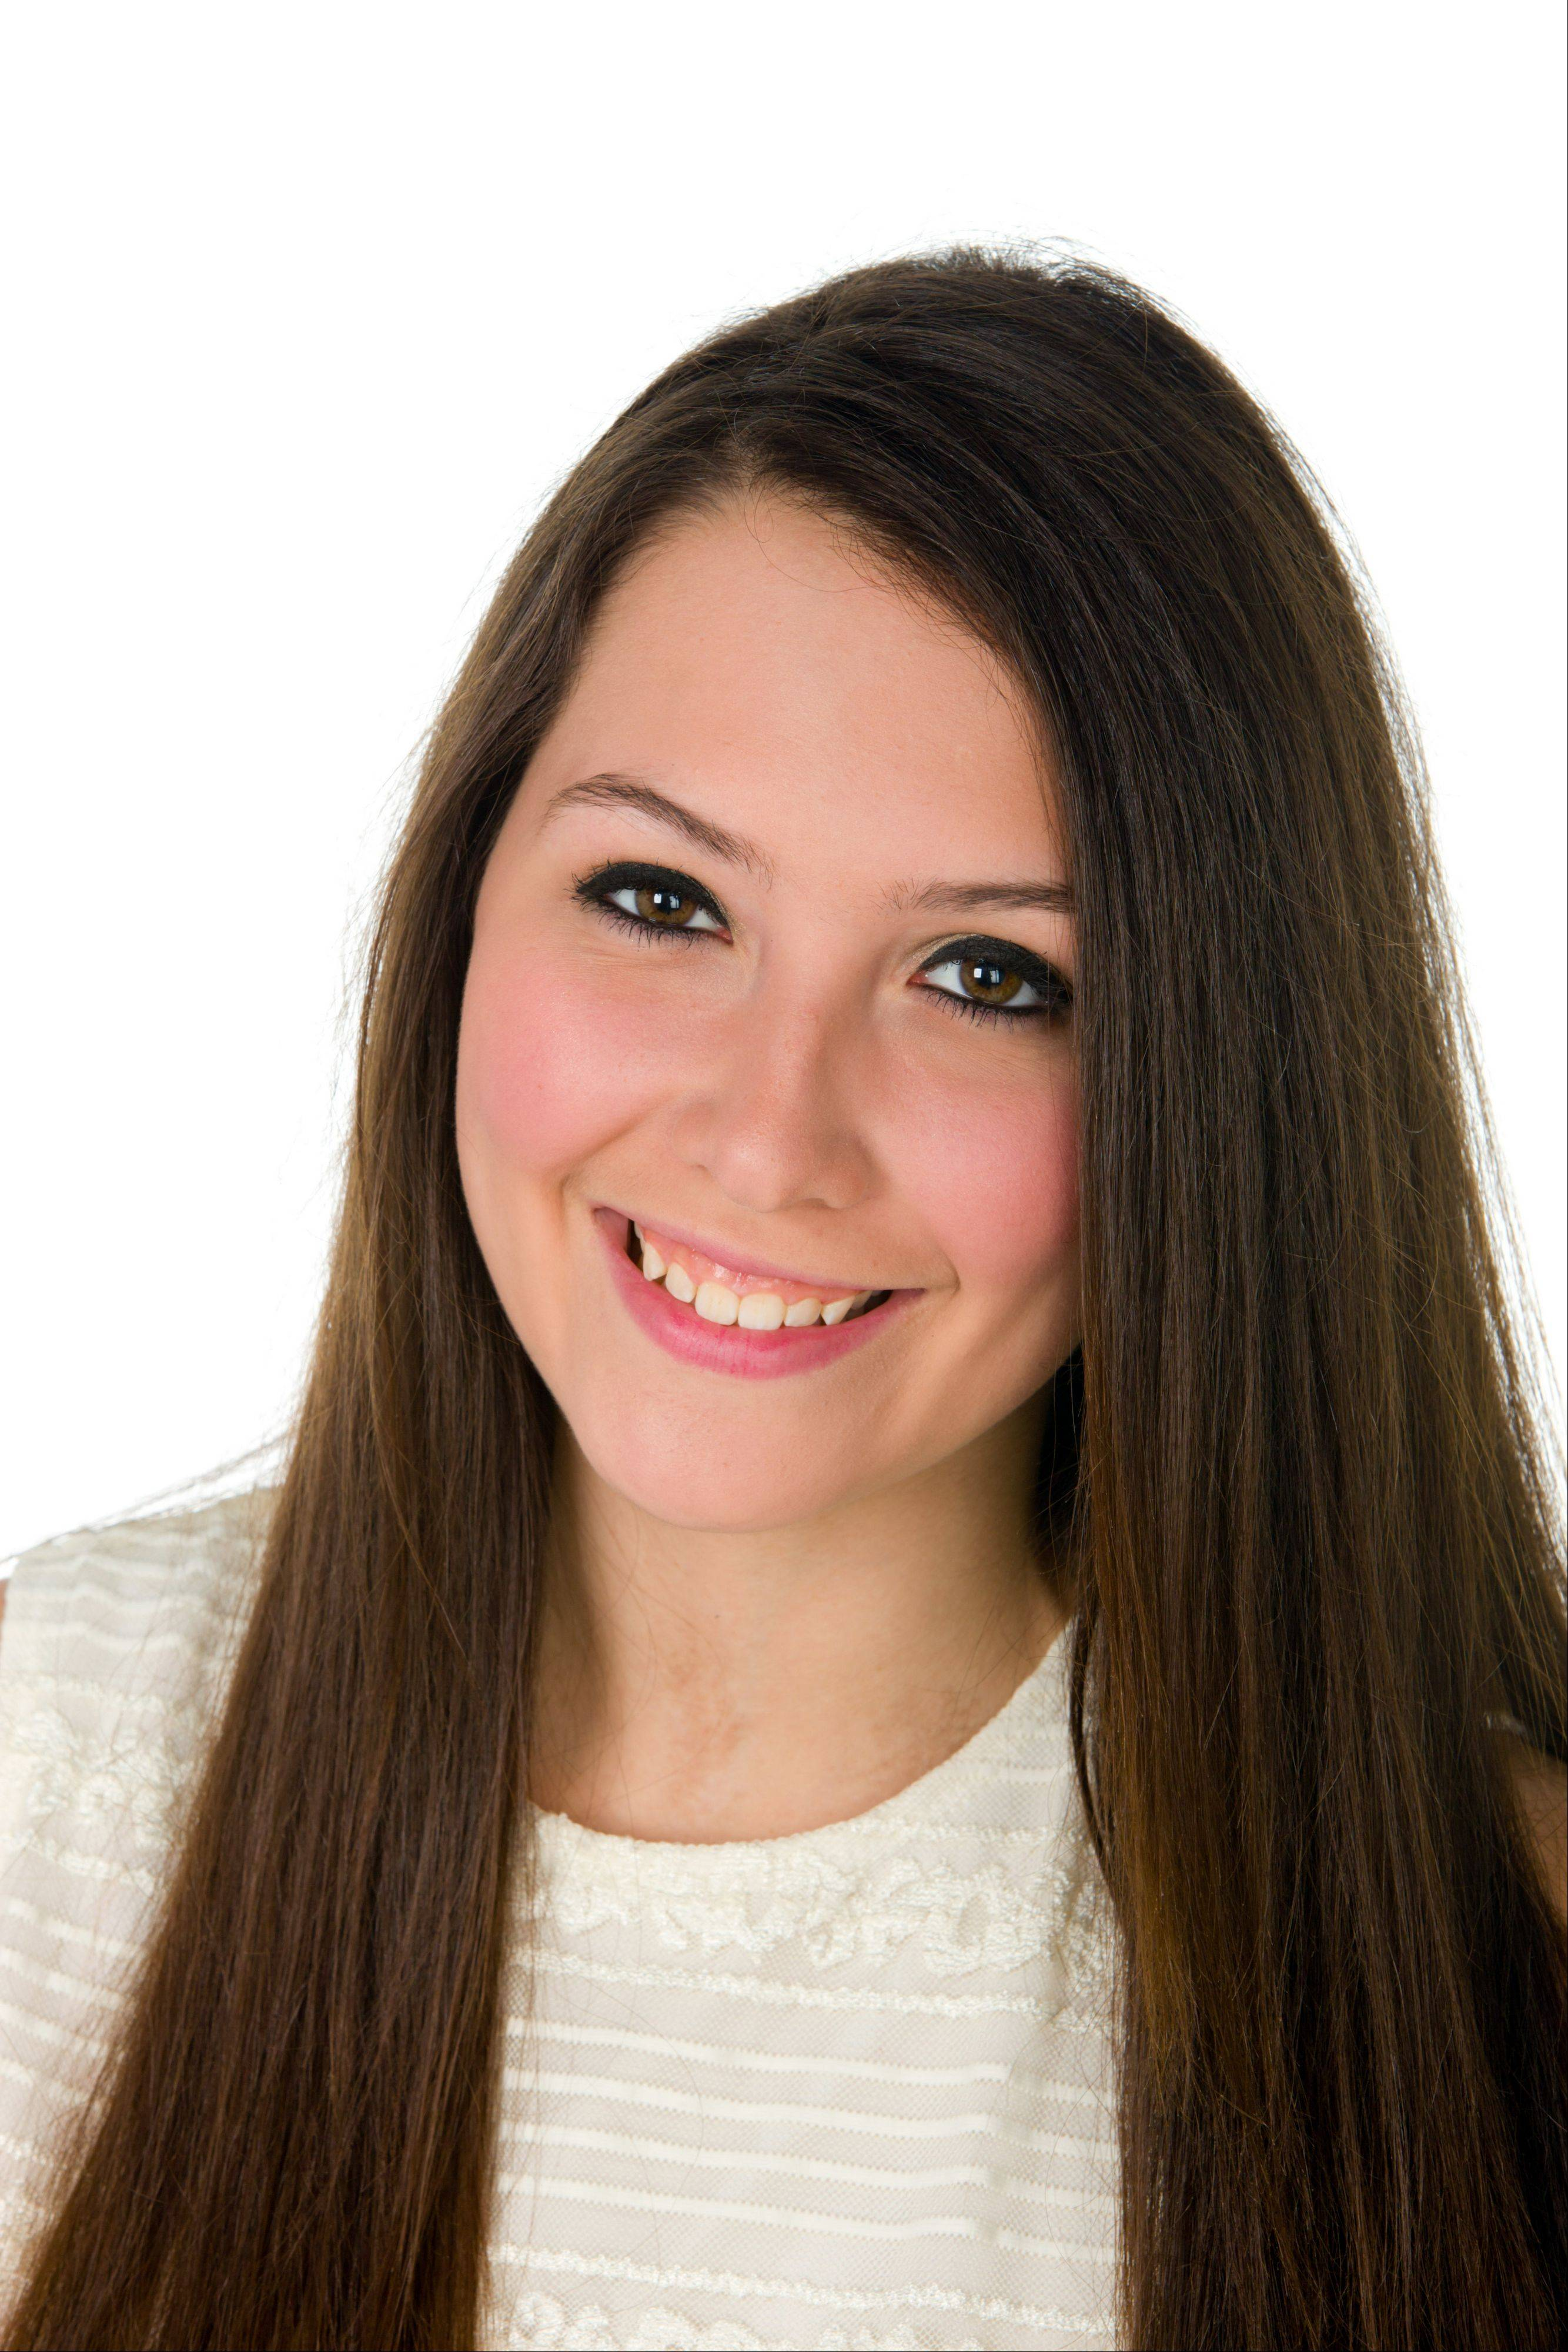 Samantha Vazquez of Sugar Grove is representing Illinois in the 54th Distinguished Young Women National Finals in Mobile, Ala. Vazquez and 49 others -- all recent high school seniors -- are competing for college scholarship money.